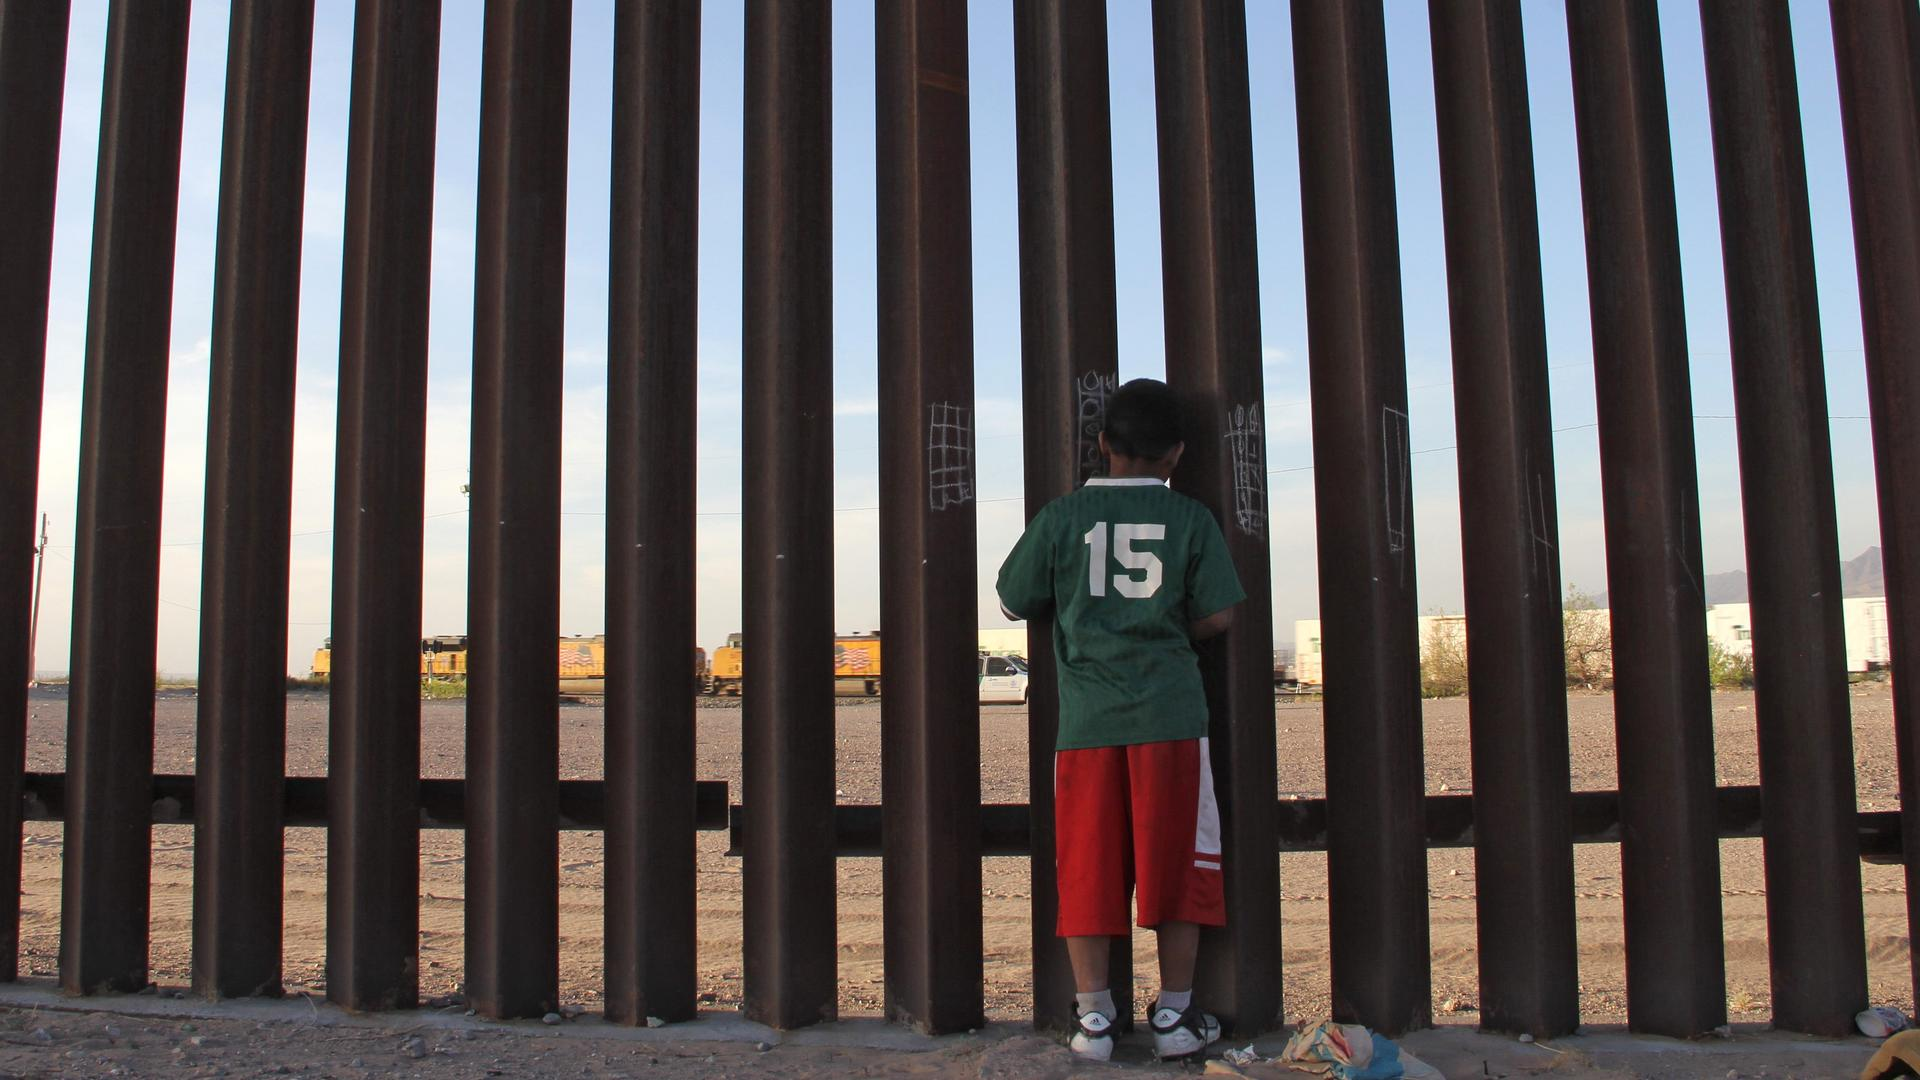 A Mexican child looks at a vehicle of the US border patrol through the US-Mexico fence in Ciudad Juarez, Chihuahua state, Mexico on April 4, 2018. Photo: HERIKA MARTINEZ/AFP/Getty Images